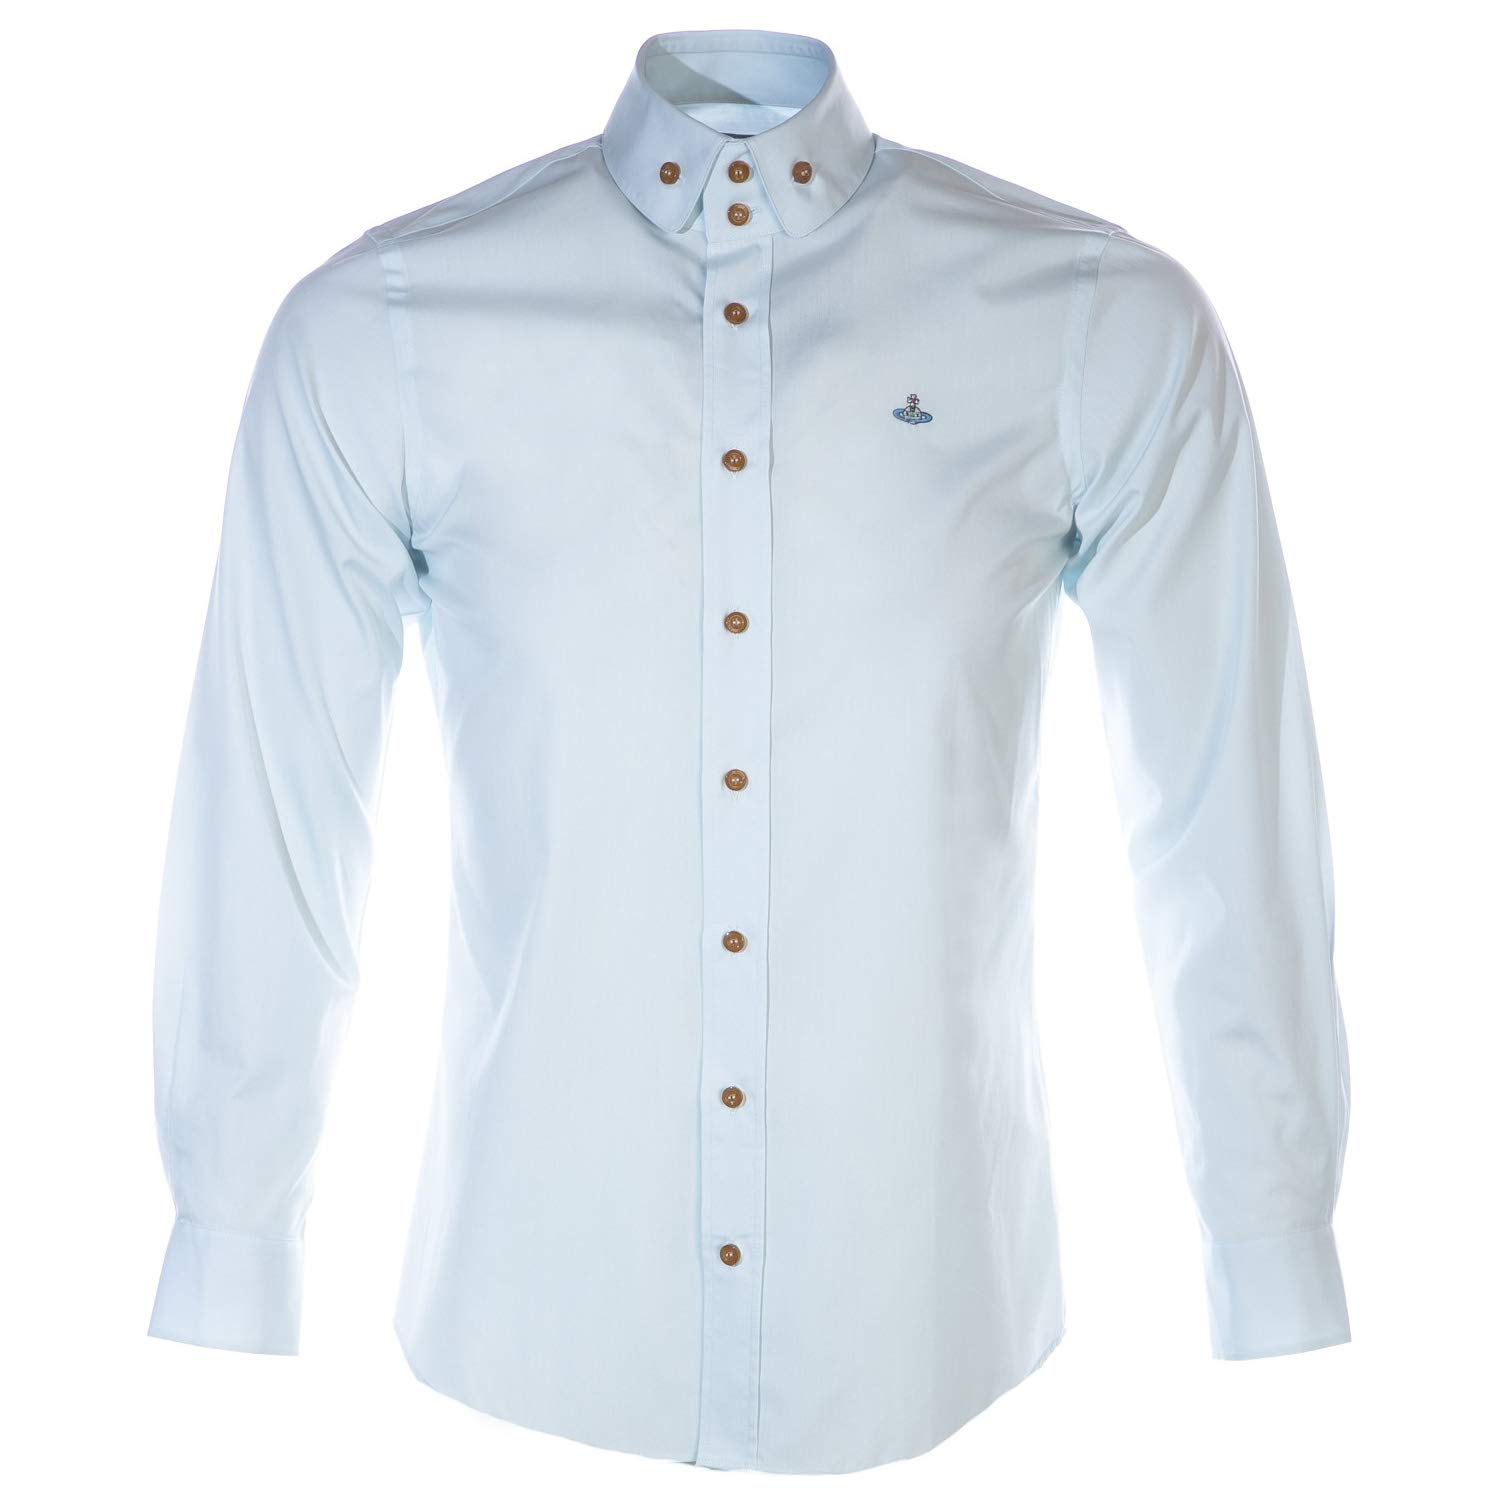 6285ba961 Vivienne Westwood 2 Button Collar Button Down Shirt in Light Blue 46 (S):  Amazon.co.uk: Clothing